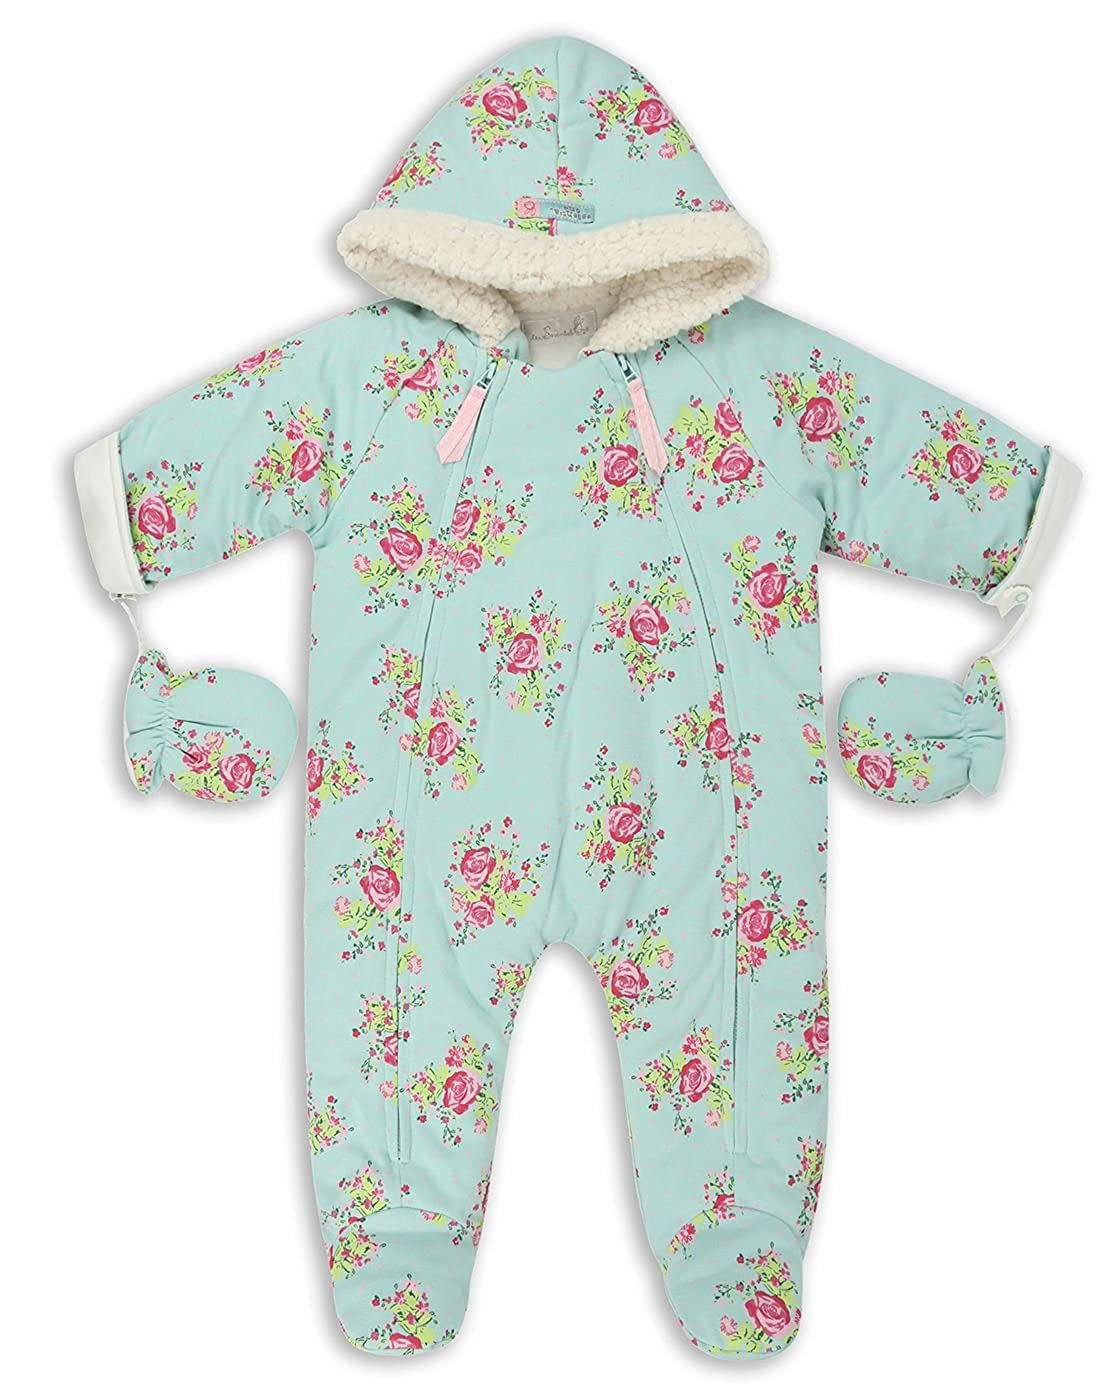 The Essential One - Baby Girls Vintage Floral Jersey Pramsuit - Mint - EO261